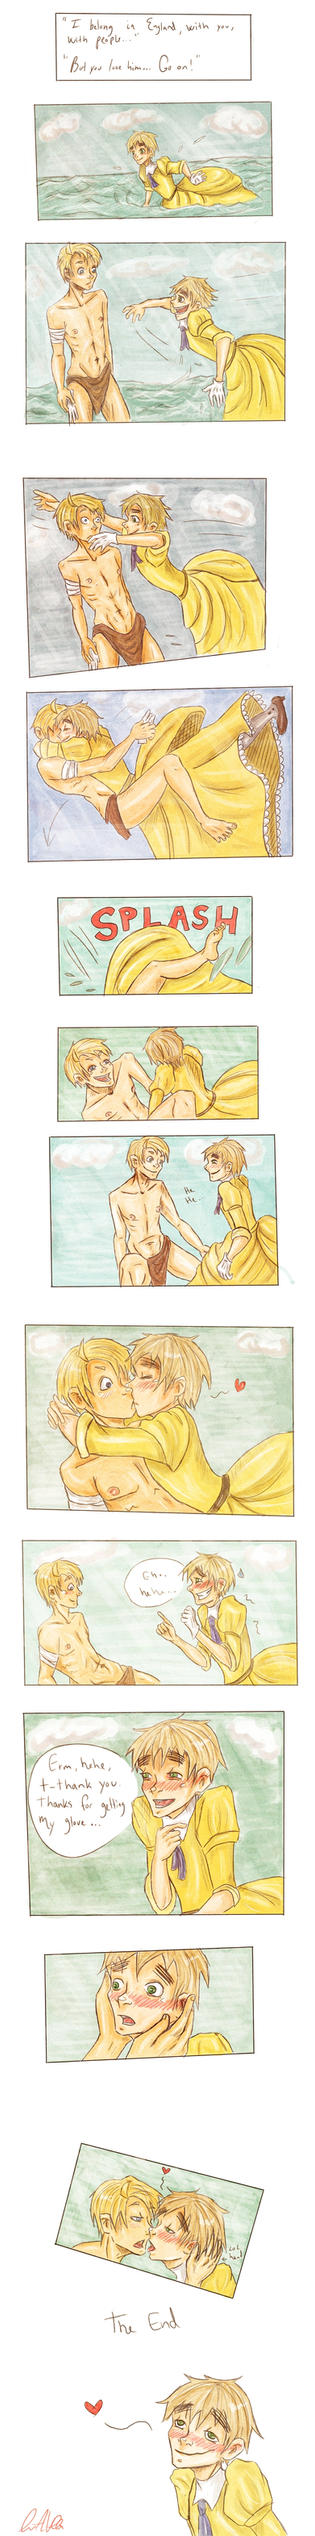 USUK Tarzan crossover COMIC by clarex-ama on DeviantArt